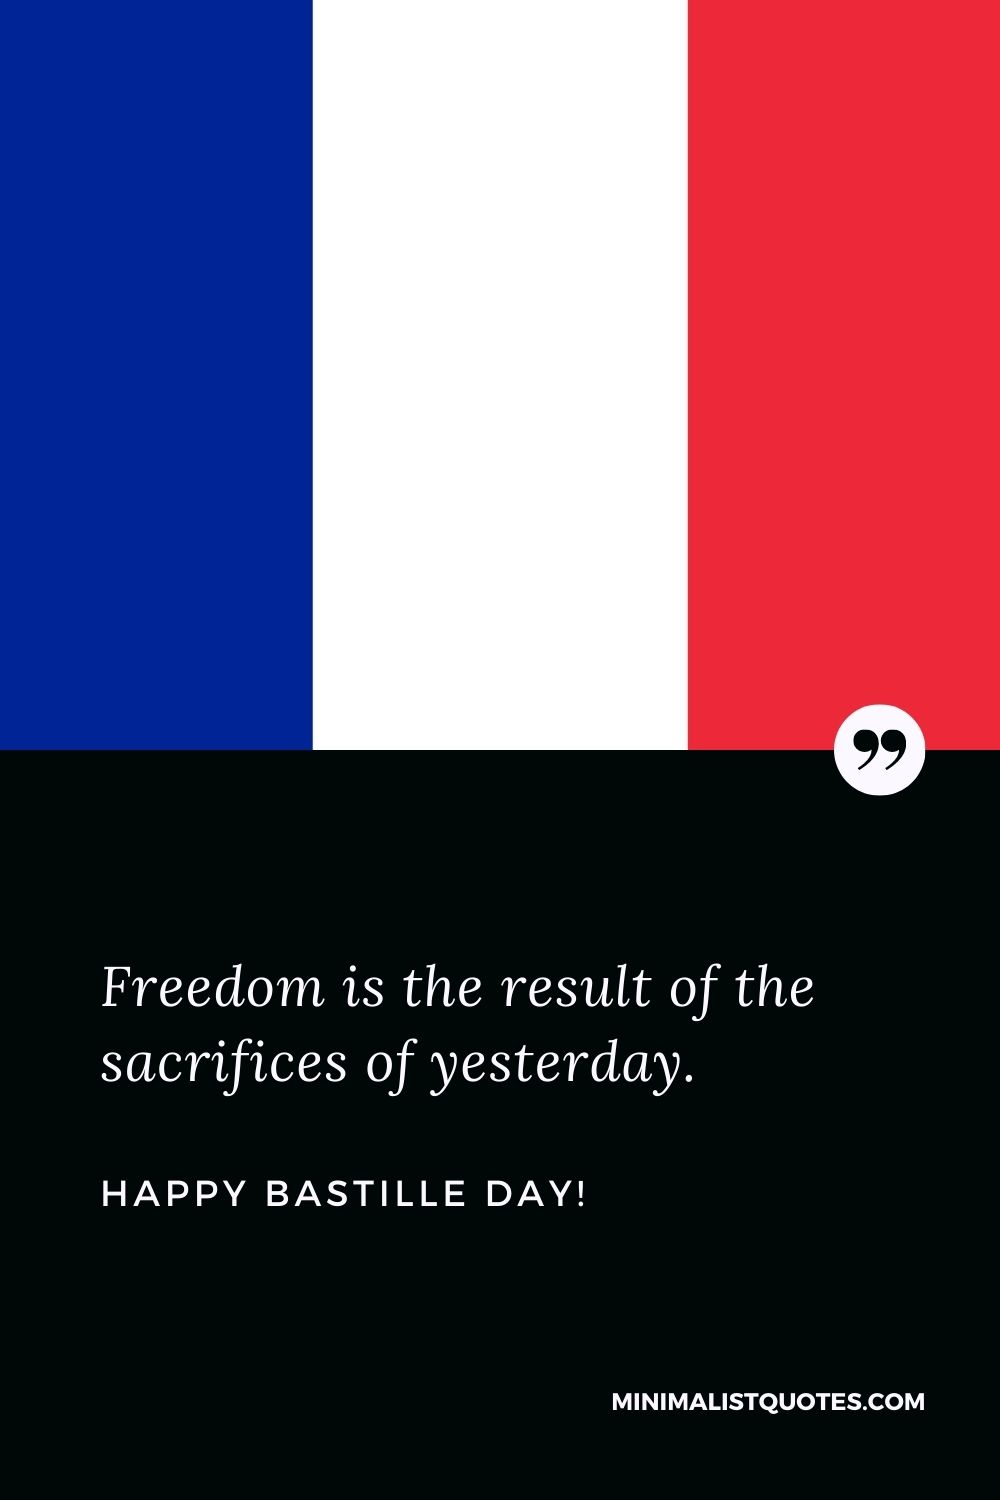 Bastille Day Wishes: Freedom is the result of the sacrifices of yesterday. Happy Bastille Day!